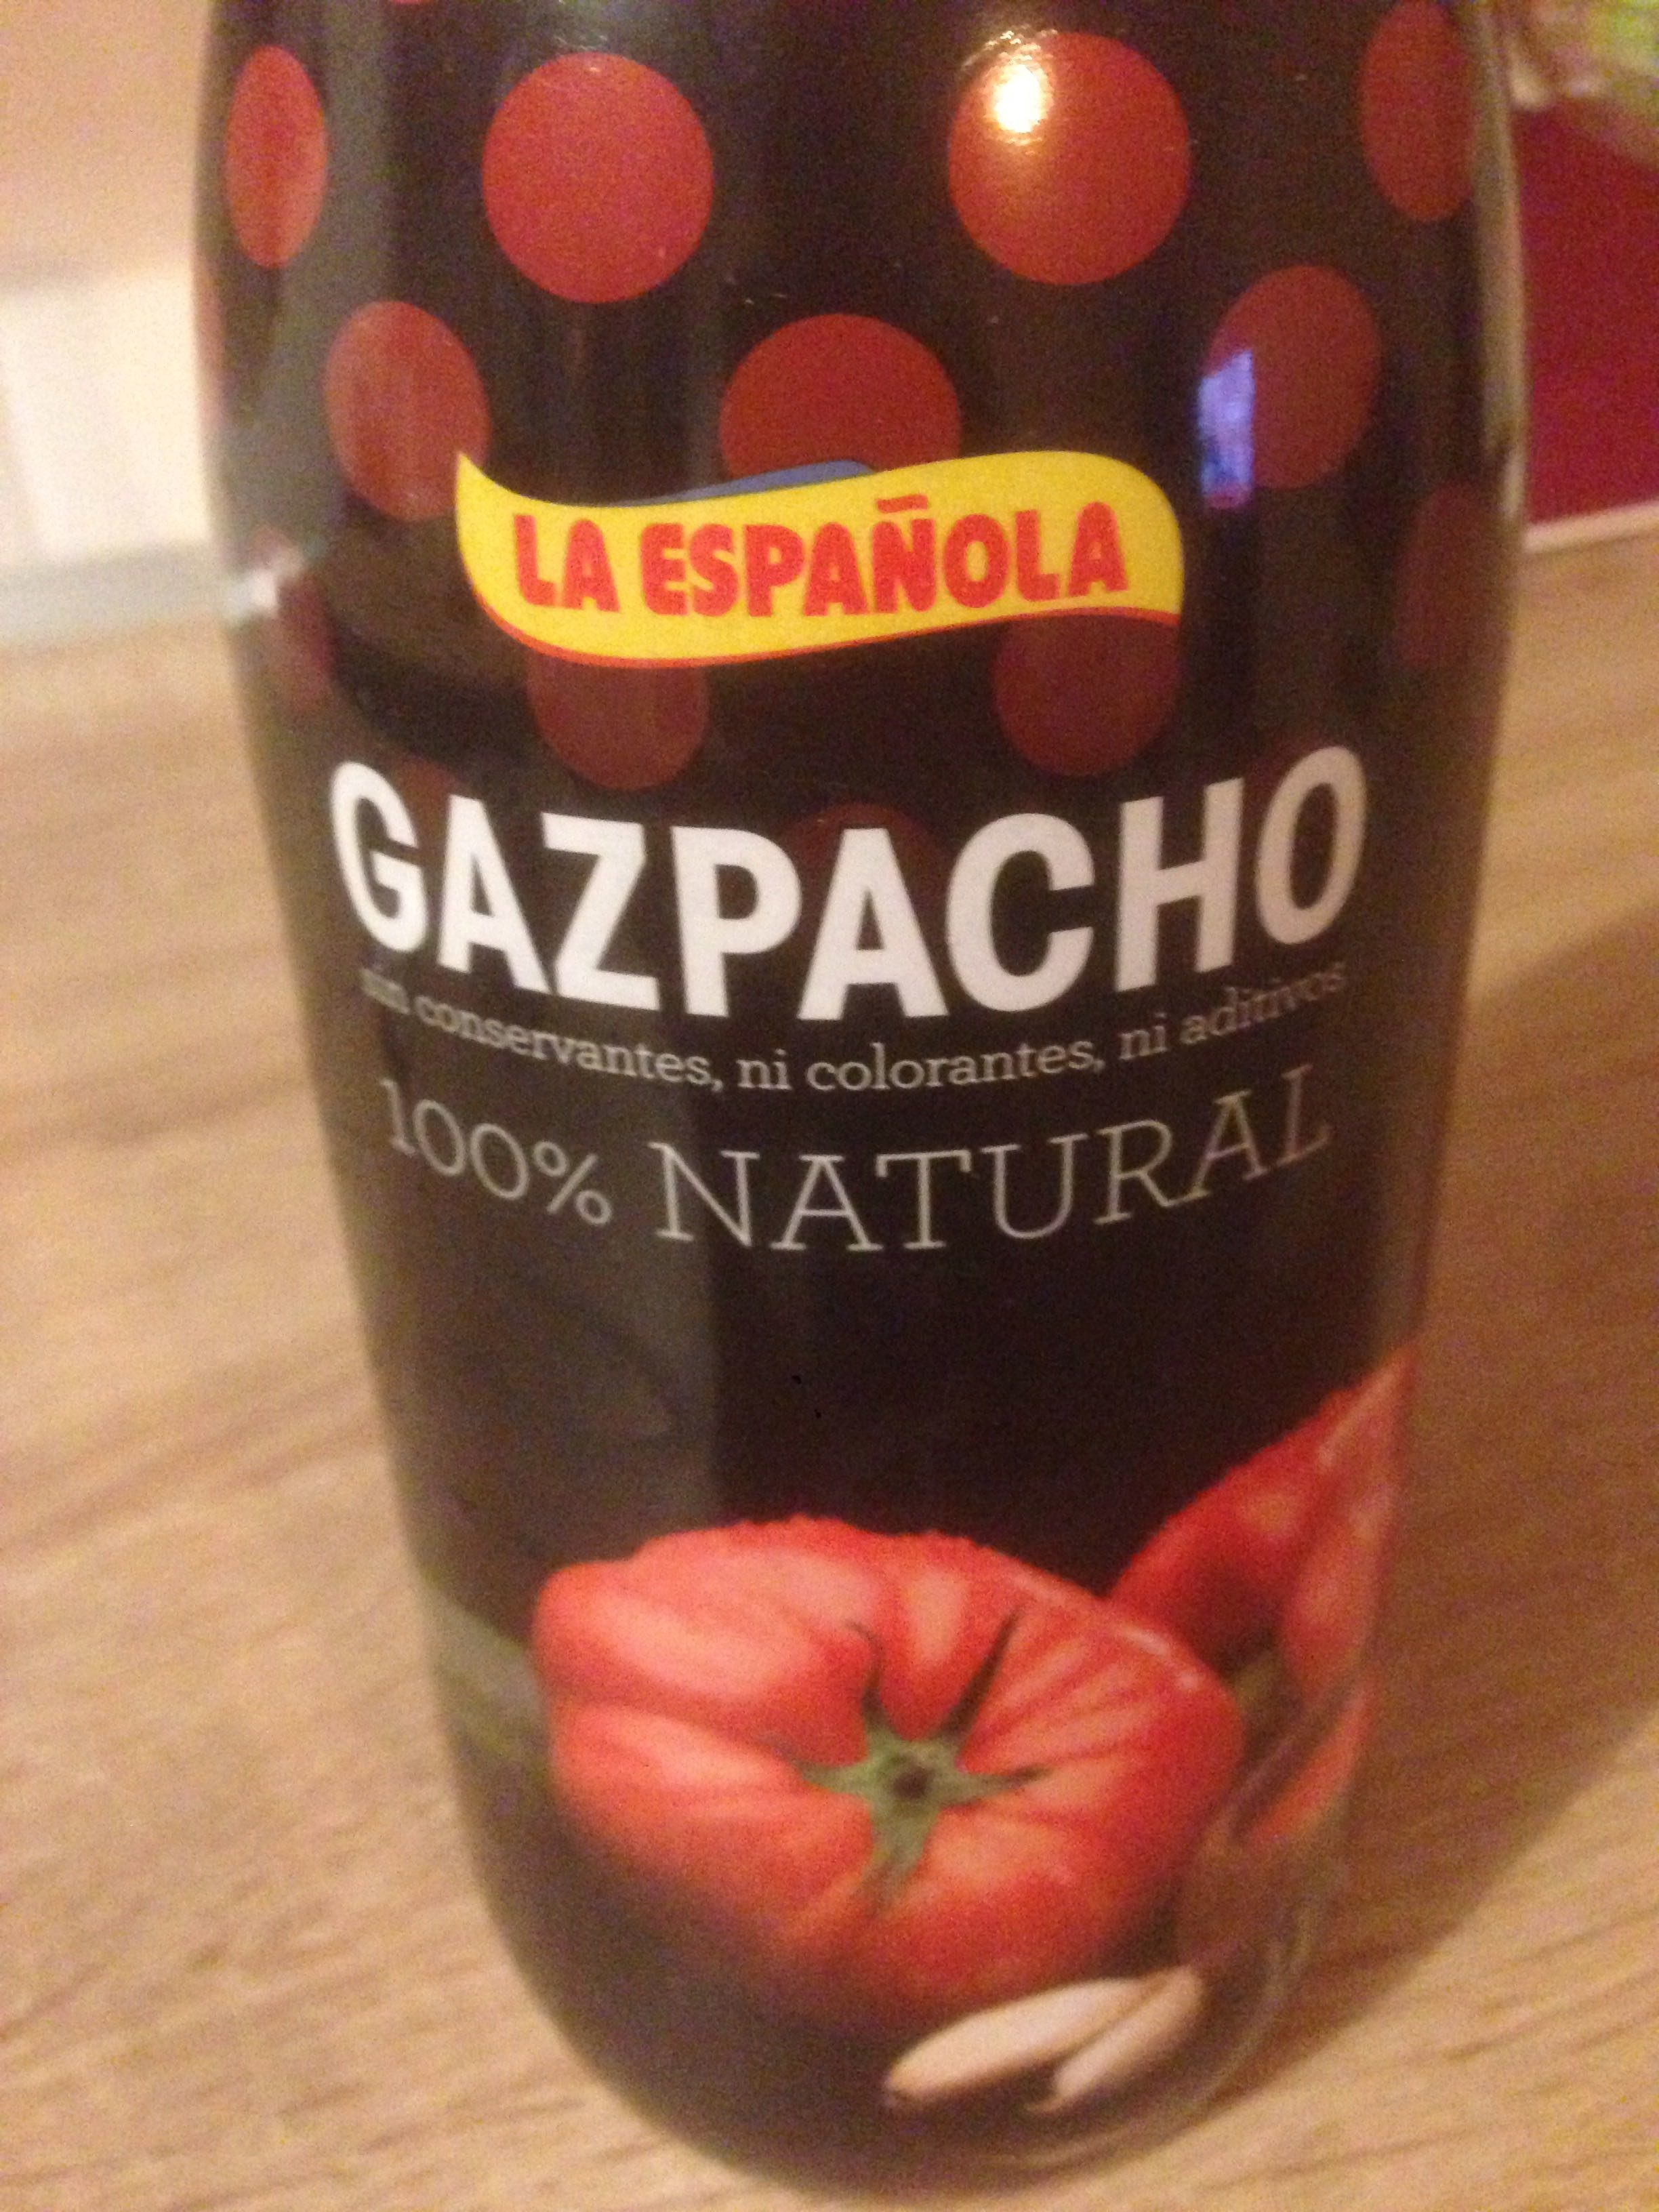 Gaspacho La Espanola 100% Naturel 1L - Product